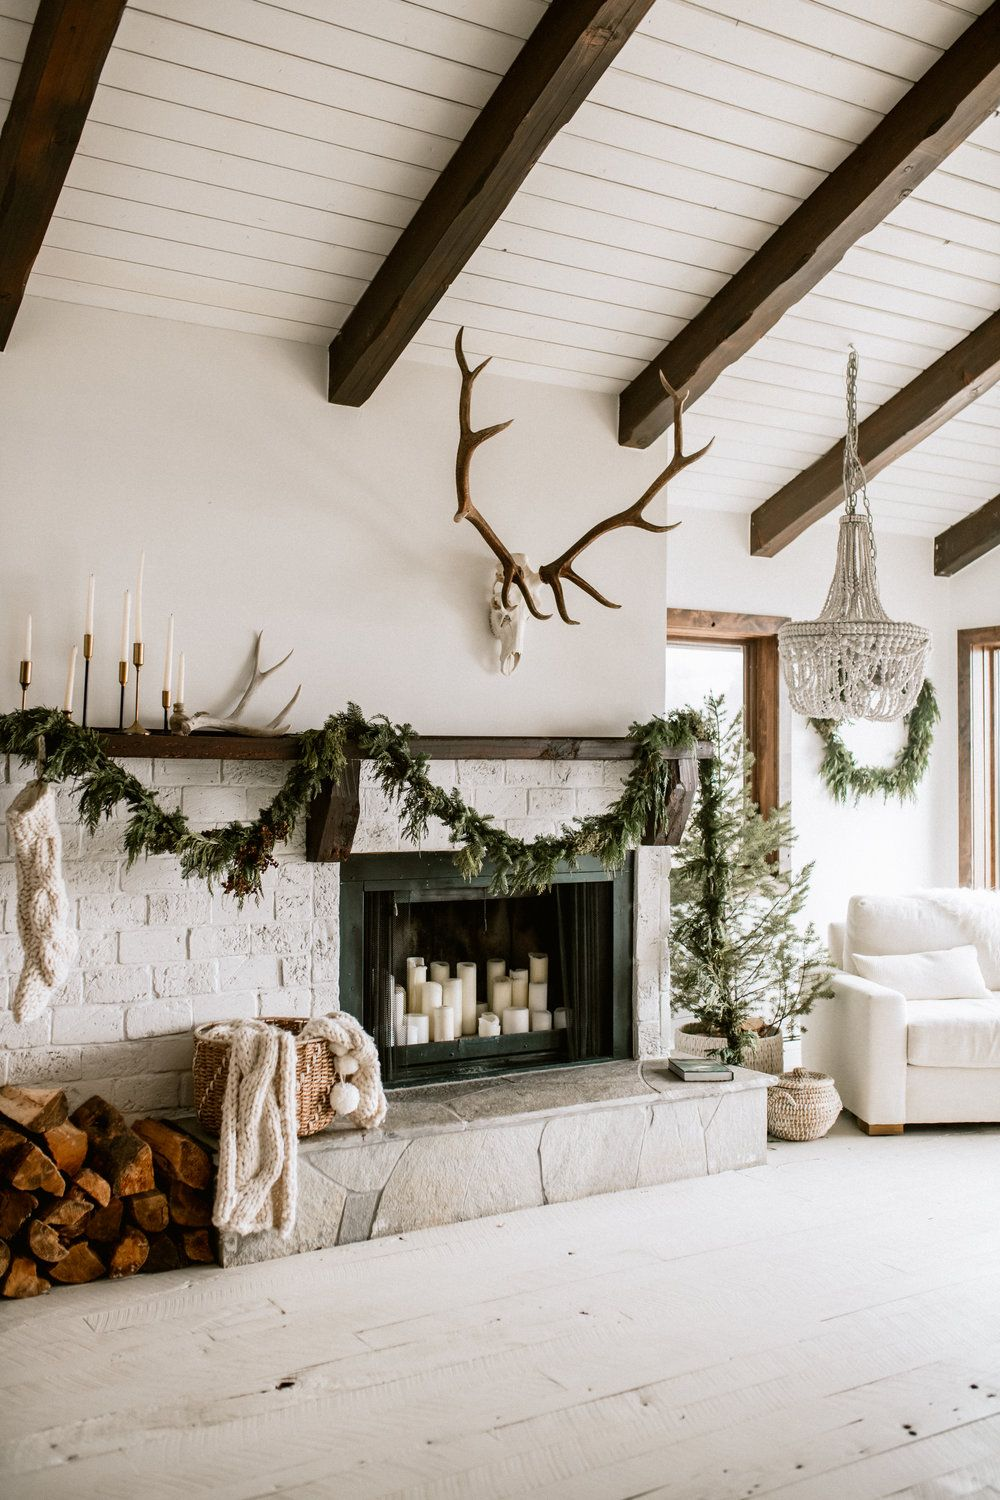 How To Decorate More Minimally For Christmas | Country ...